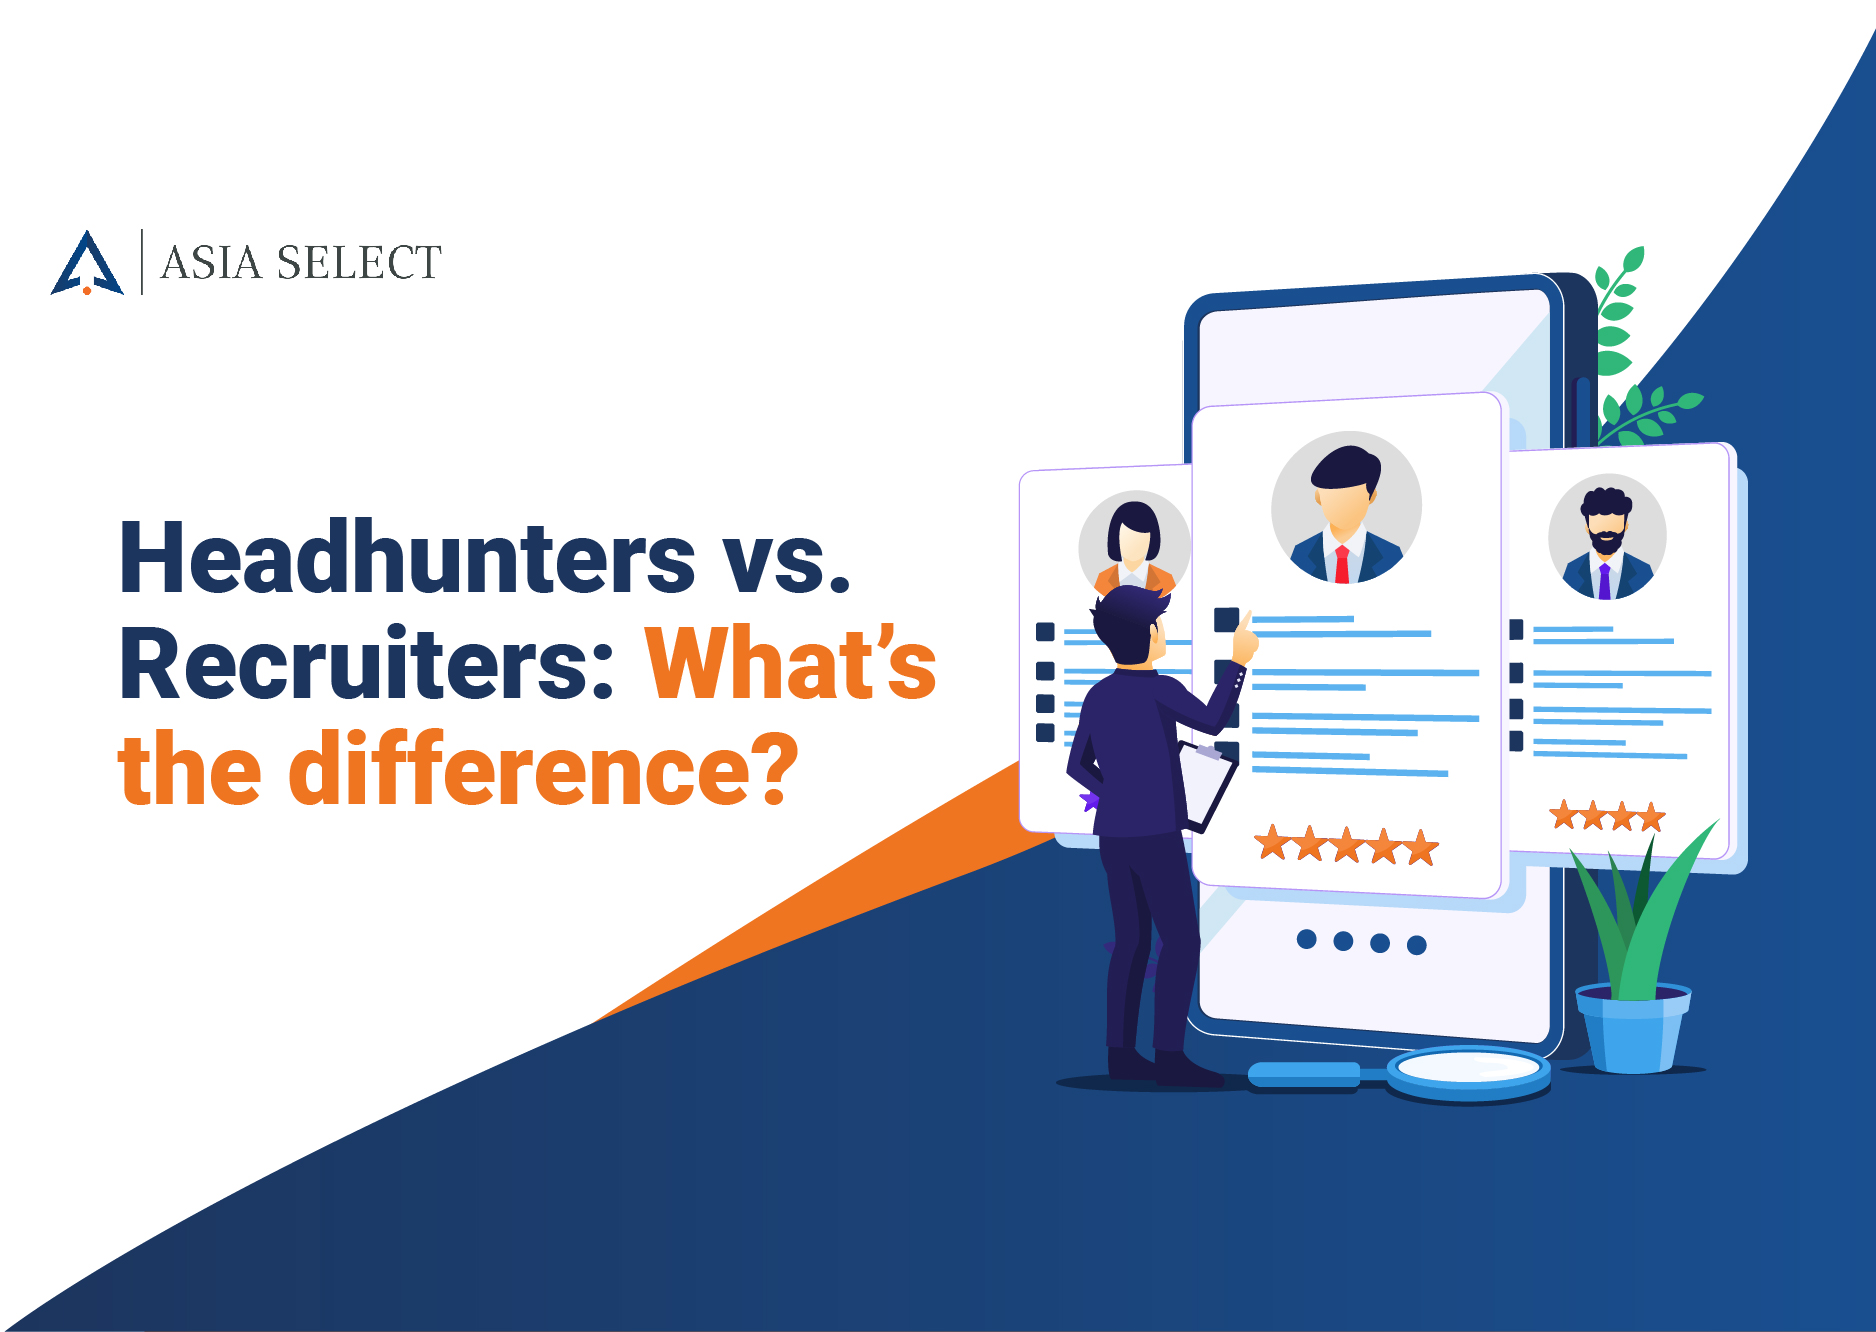 Headhunters vs. Recruiters: What's the difference?